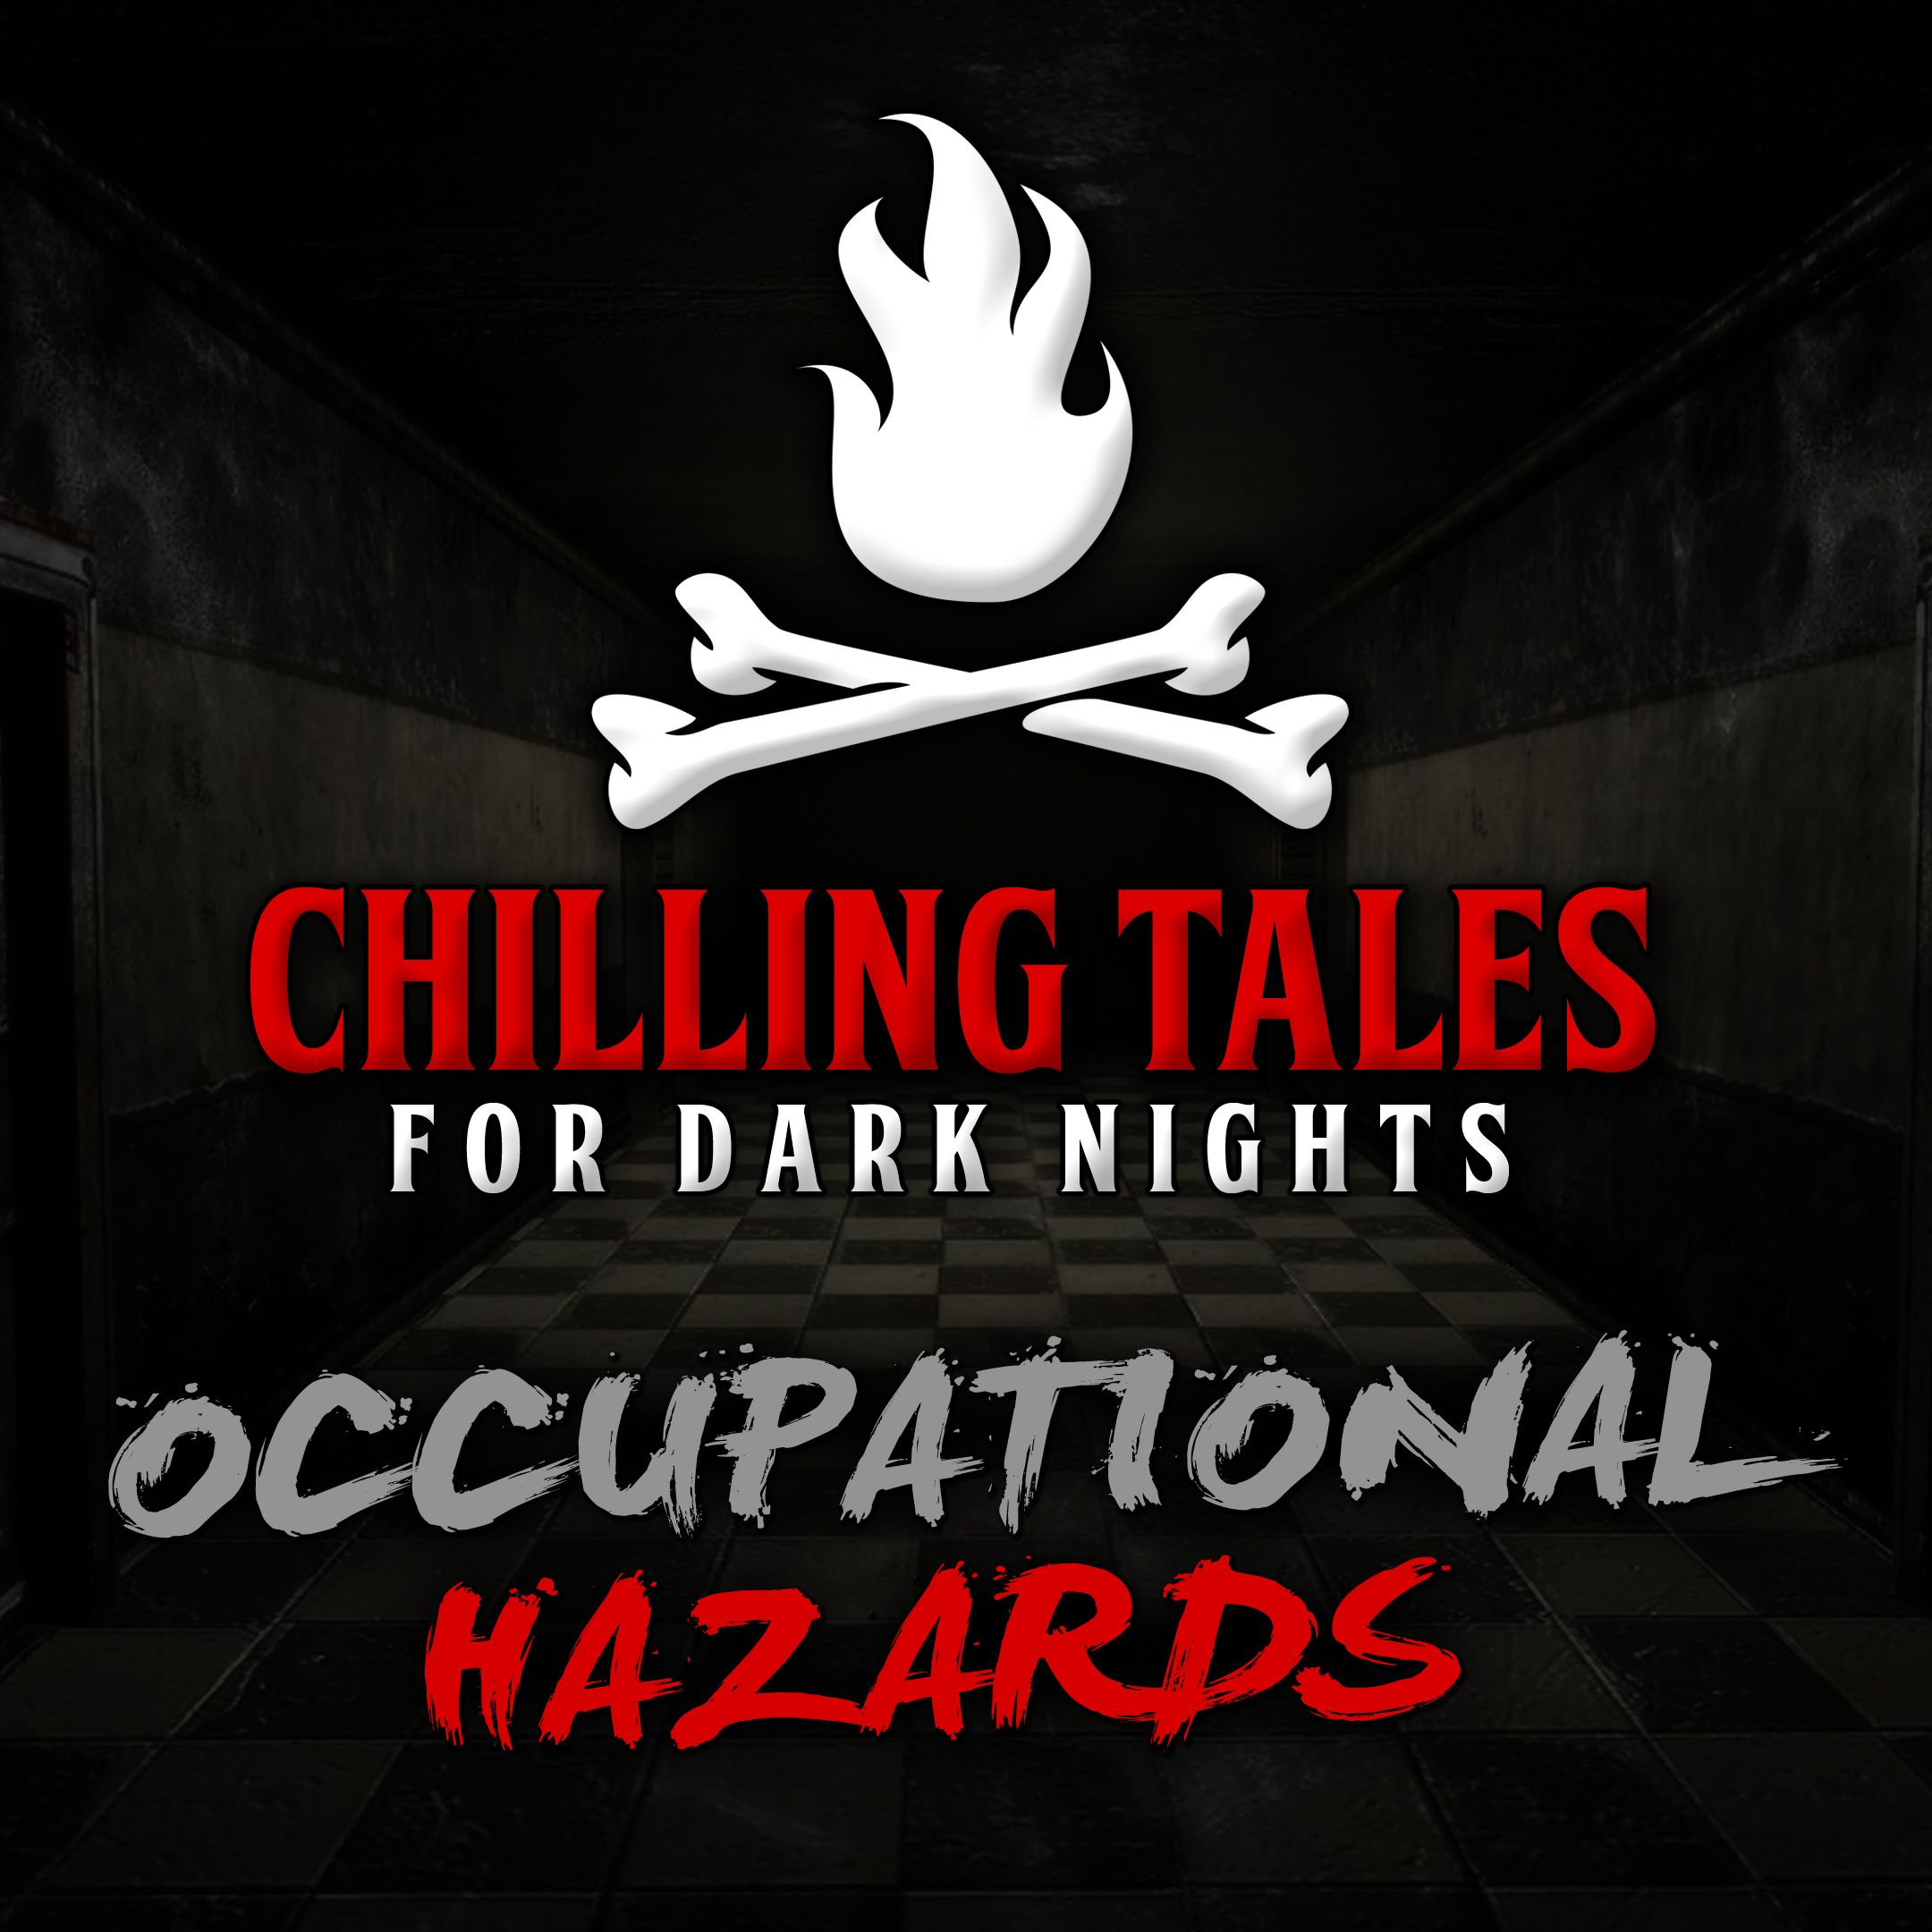 31: Occupational Hazards – Chilling Tales for Dark Nights